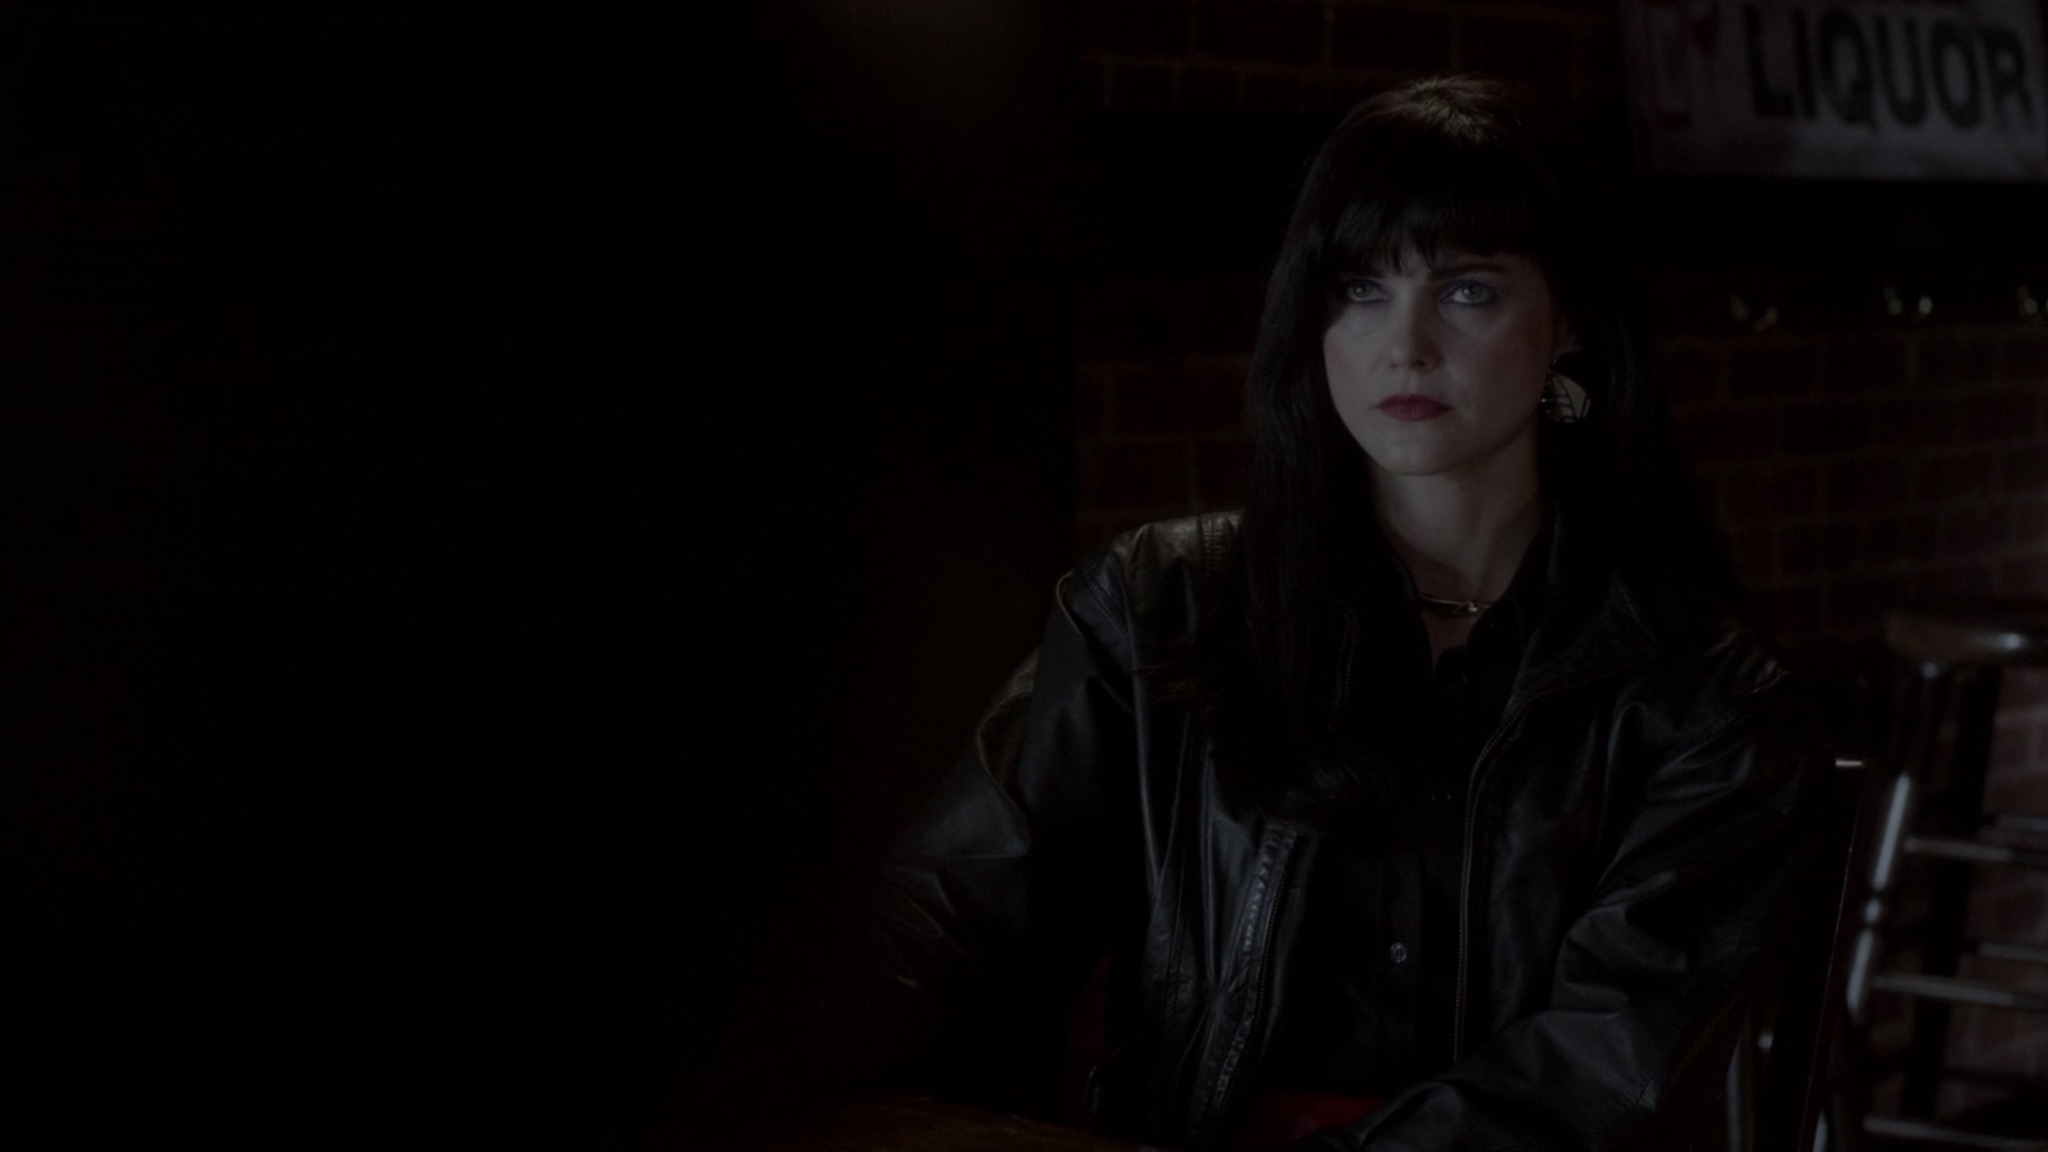 Liz back in this badass disguise to meet her informant